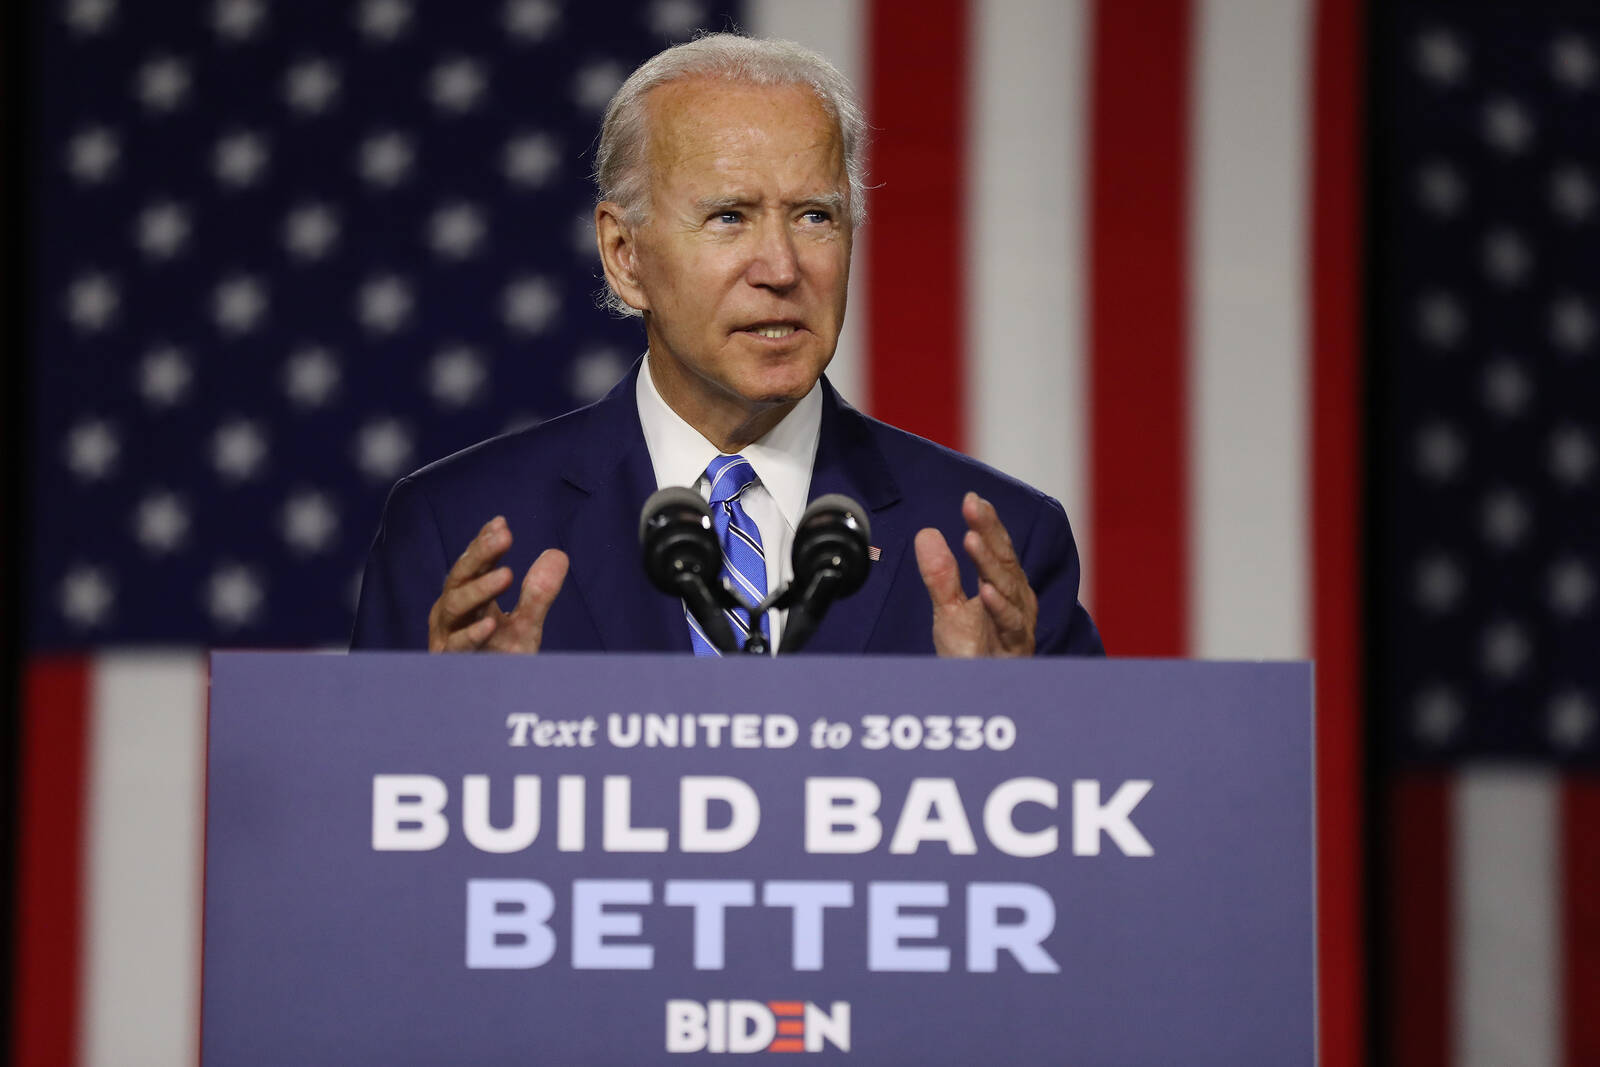 Democratic presidential candidate former Vice President Joe Biden speaks at the Chase Center July 14, 2020 in Wilmington, Delaware. Biden delivered remarks on his campaign's 'Build Back Better' clean energy economic plan. Credit: Chip Somodevilla/Getty Im